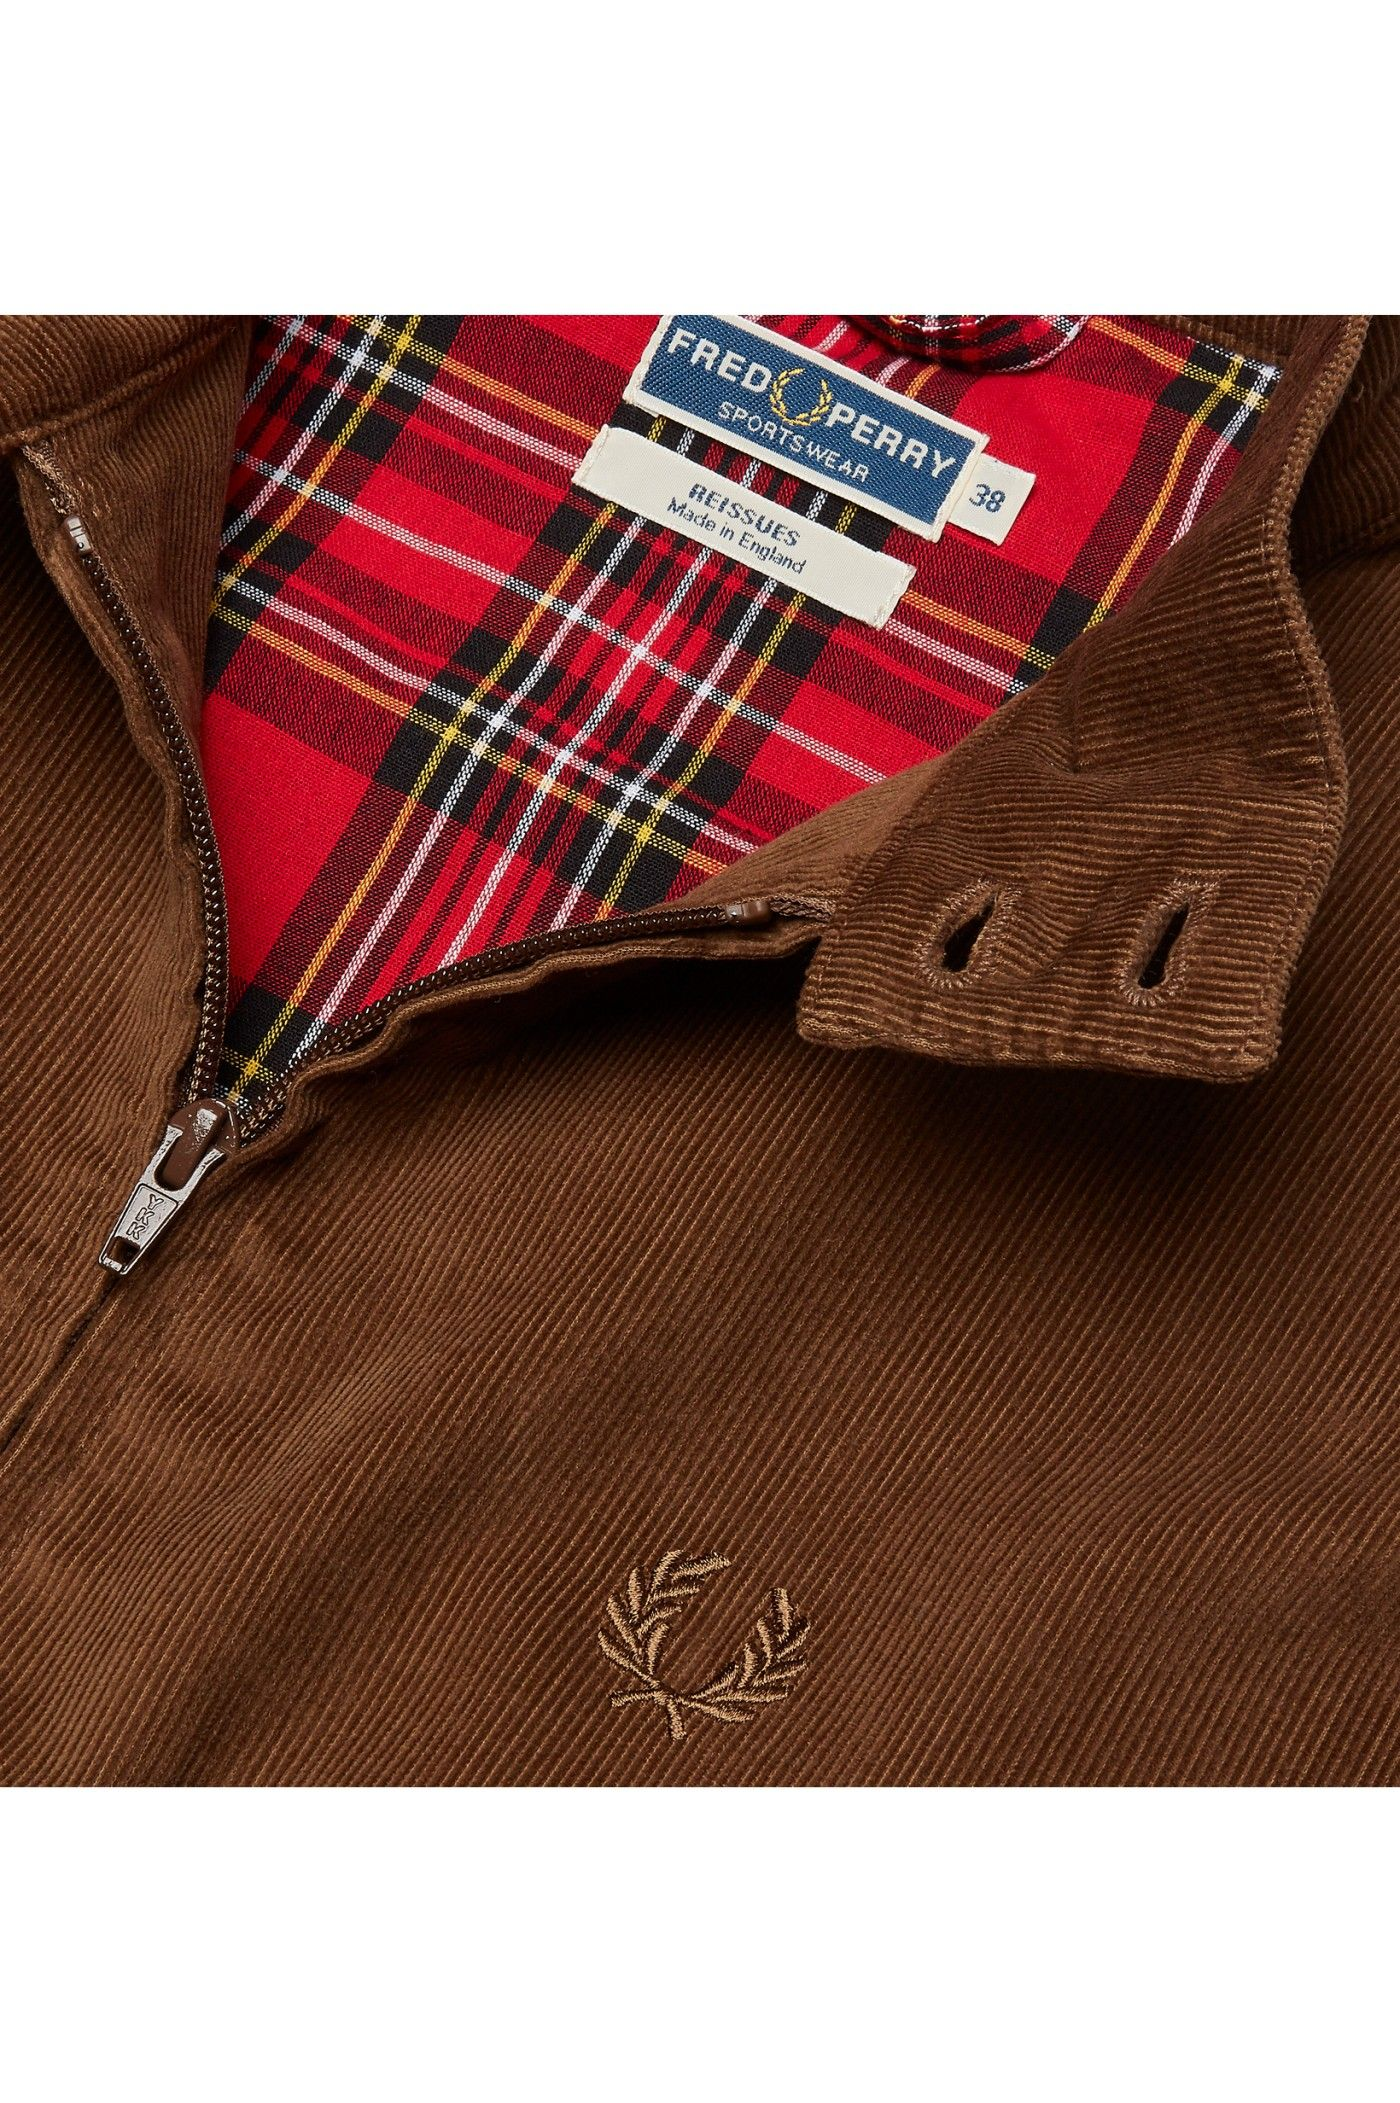 Fred Perry - Reissues Made in England Corduroy Harrington Jacket Cocoa